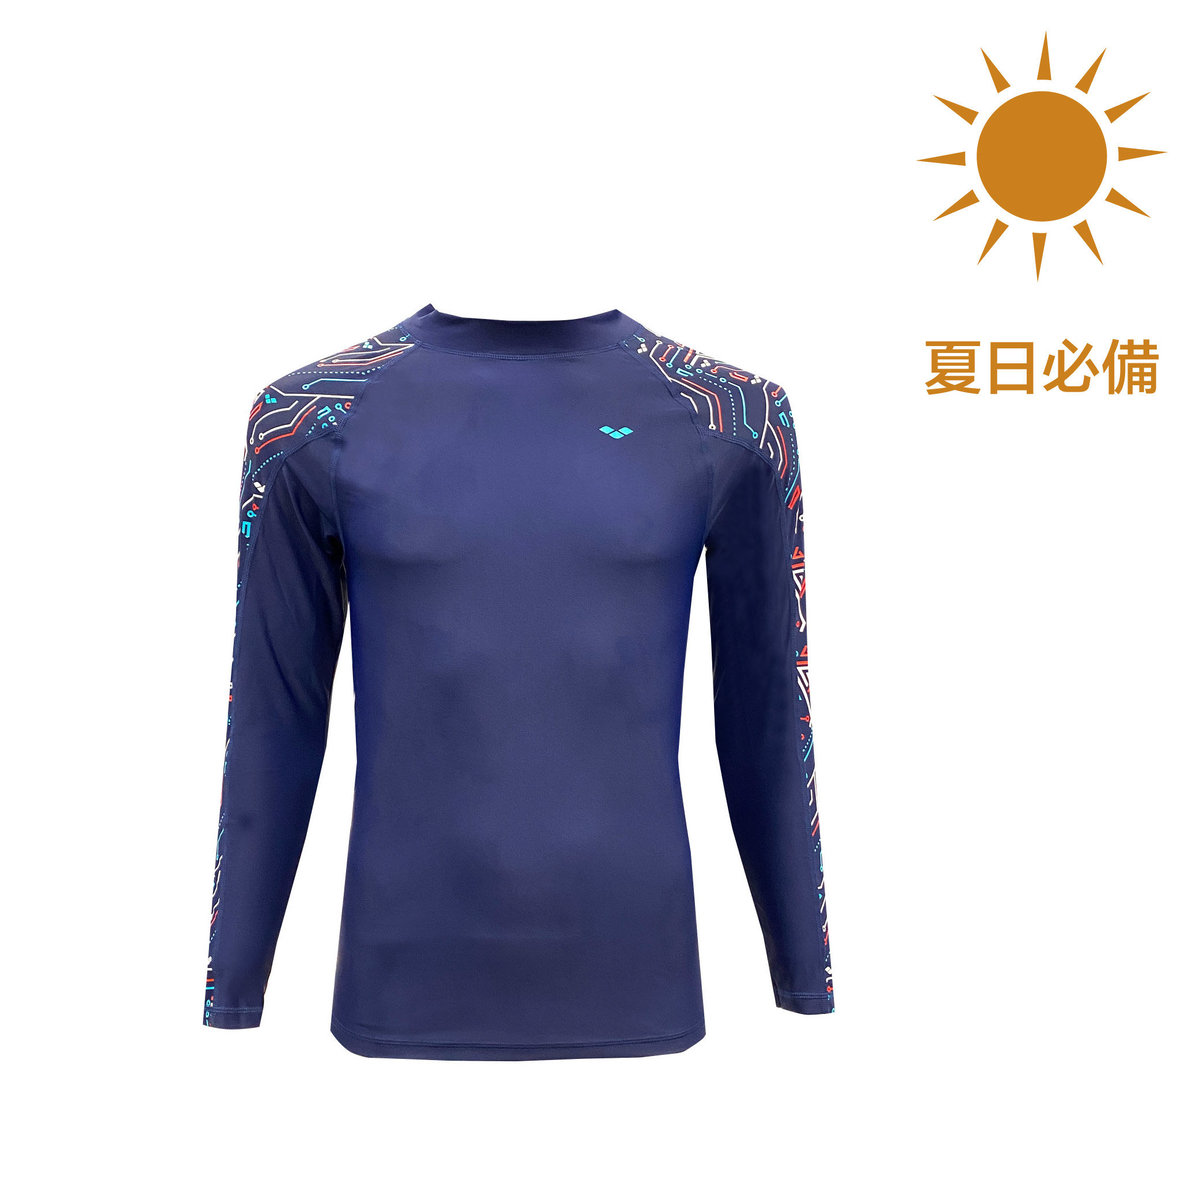 SWIMWEAR Men's CIRCUITS LONG SLEEVE SUN PROTECTION UV PROTECTION